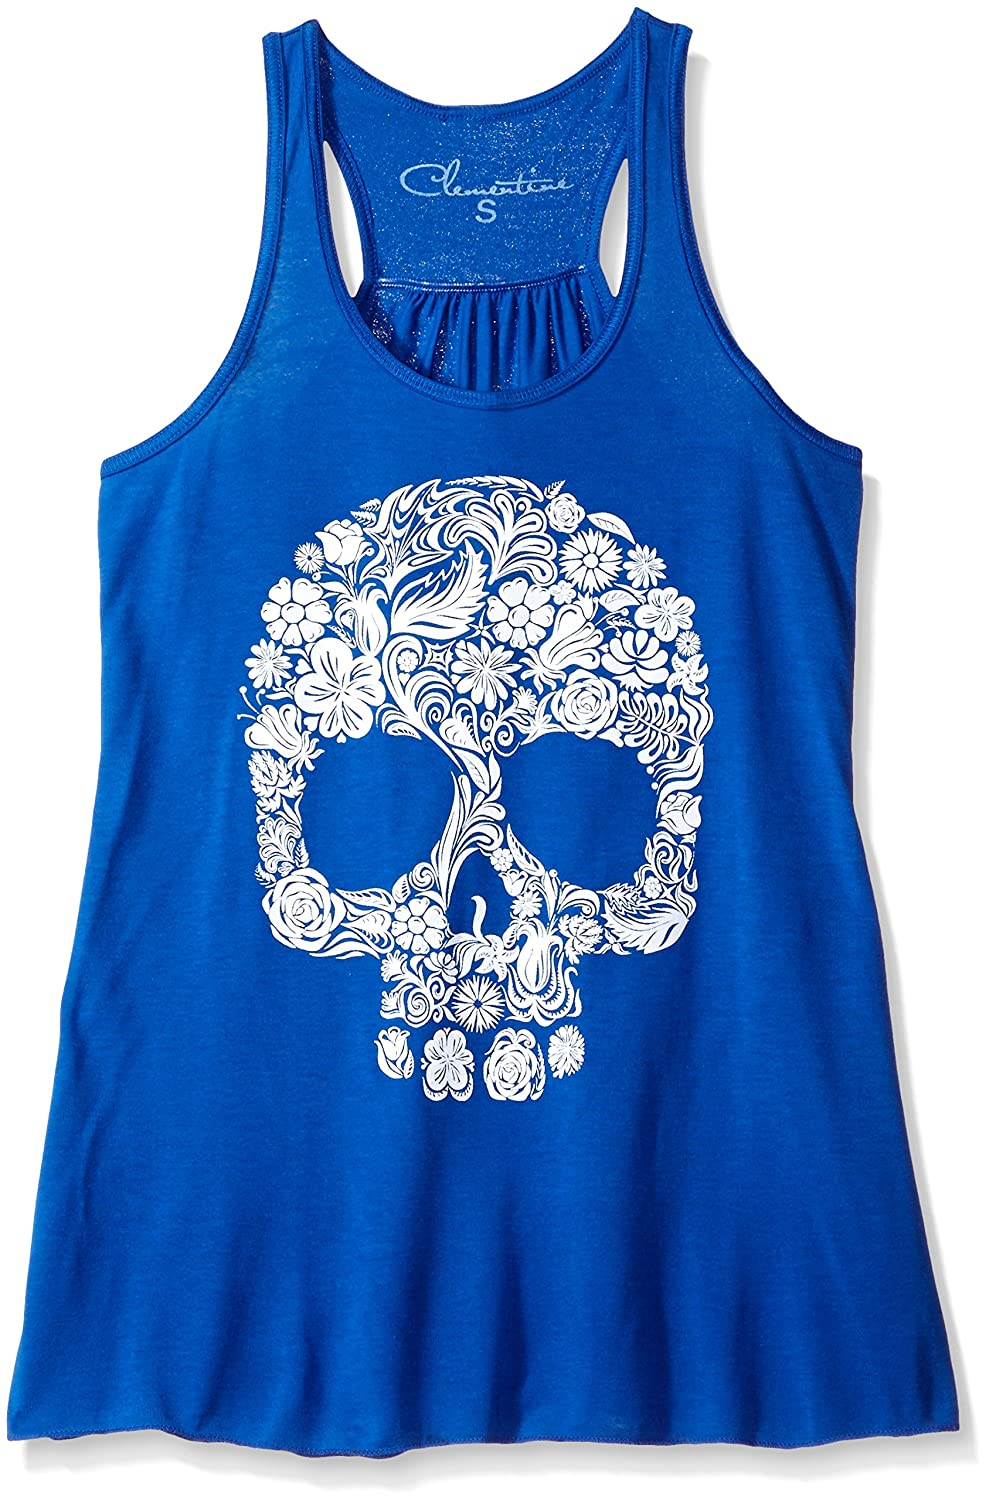 True Royal Clementine Apparel Womens Clementine Women Floral Skull Graphic Flowy Racerback Tank Tank Top Cami Shirt